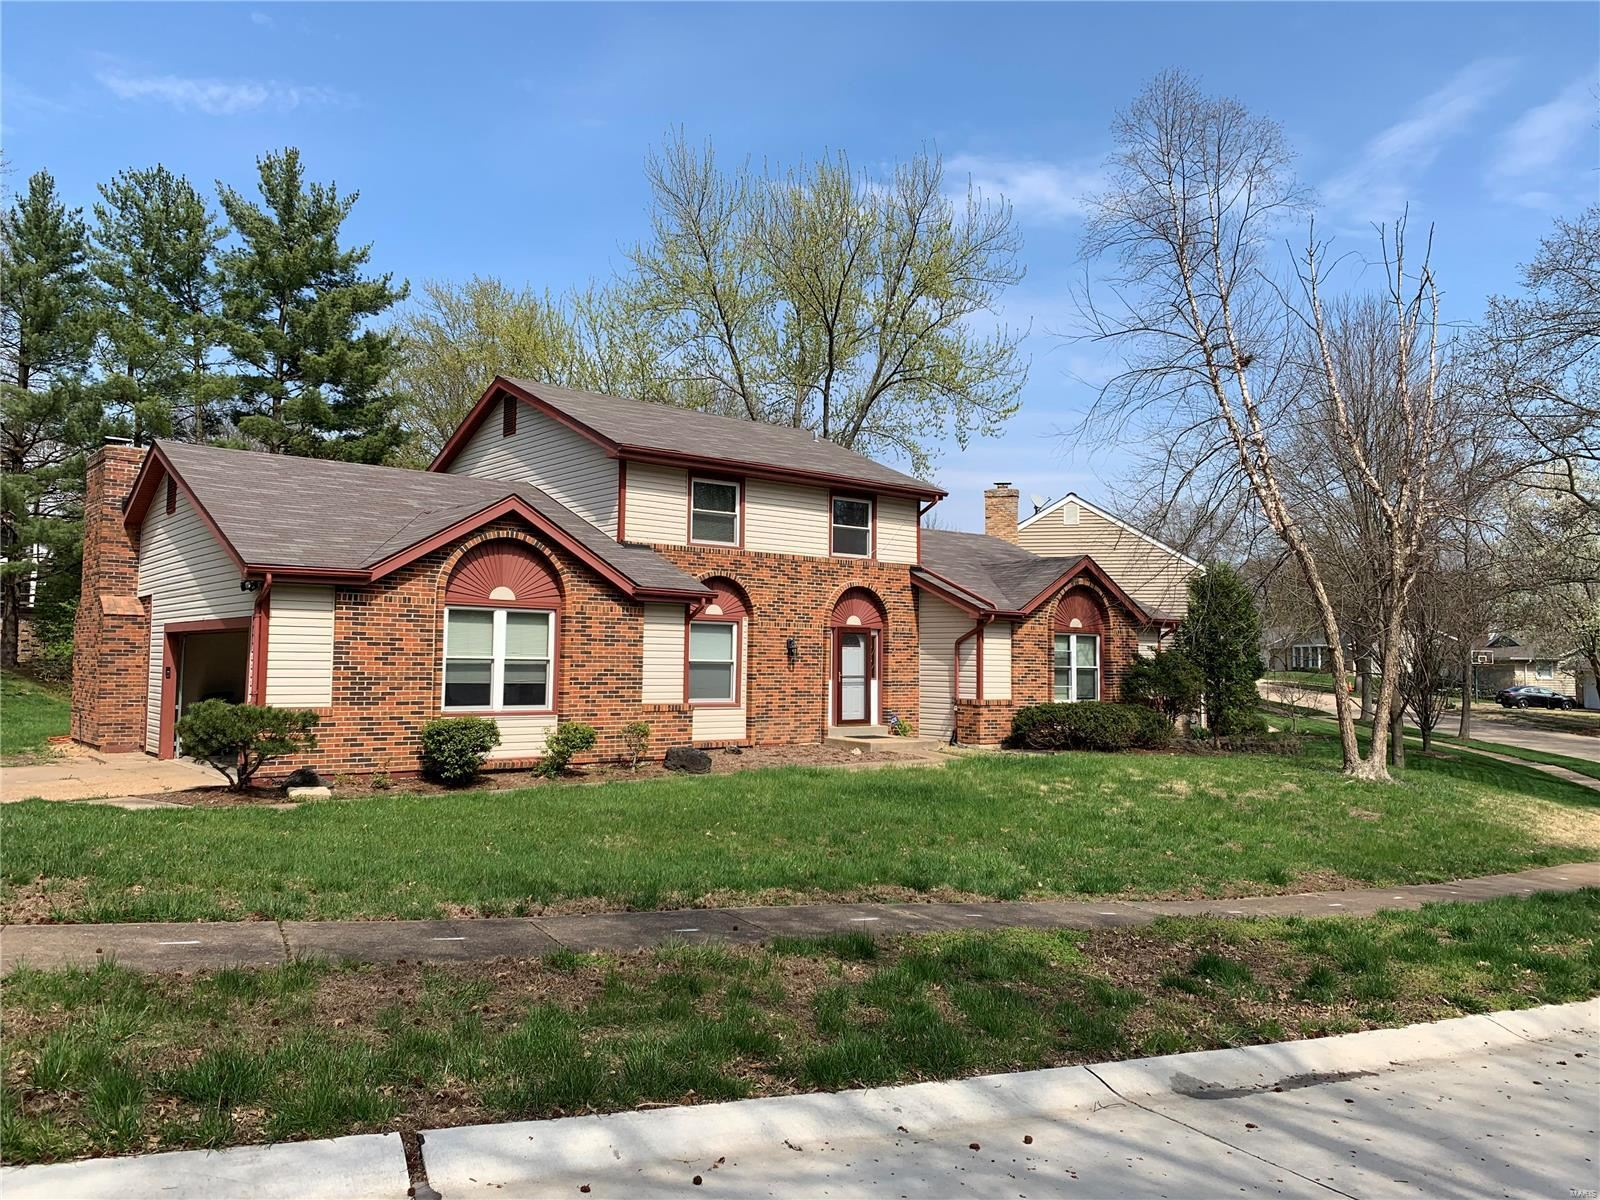 15587 Century Lake Drive, Chesterfield, MO 63017 - MLS#: 20021419